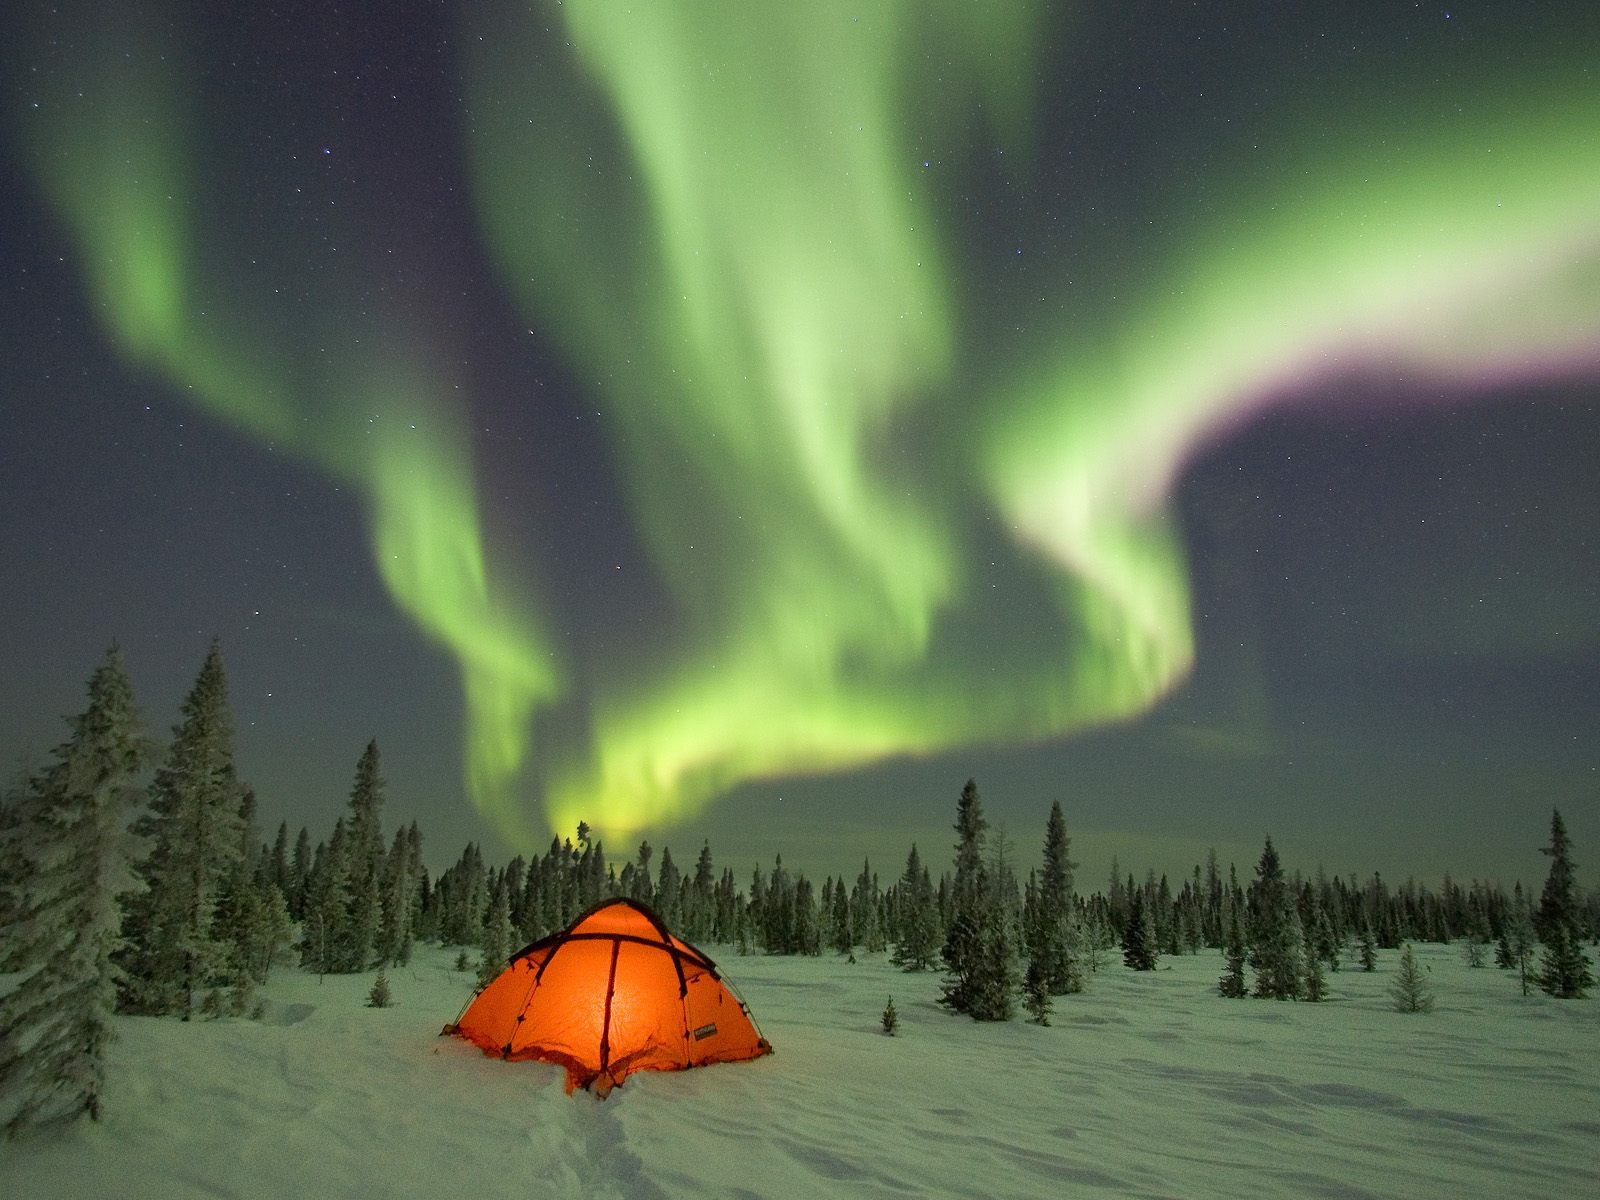 An Amazing Look at the Northern Lights! – Starts With A Bang